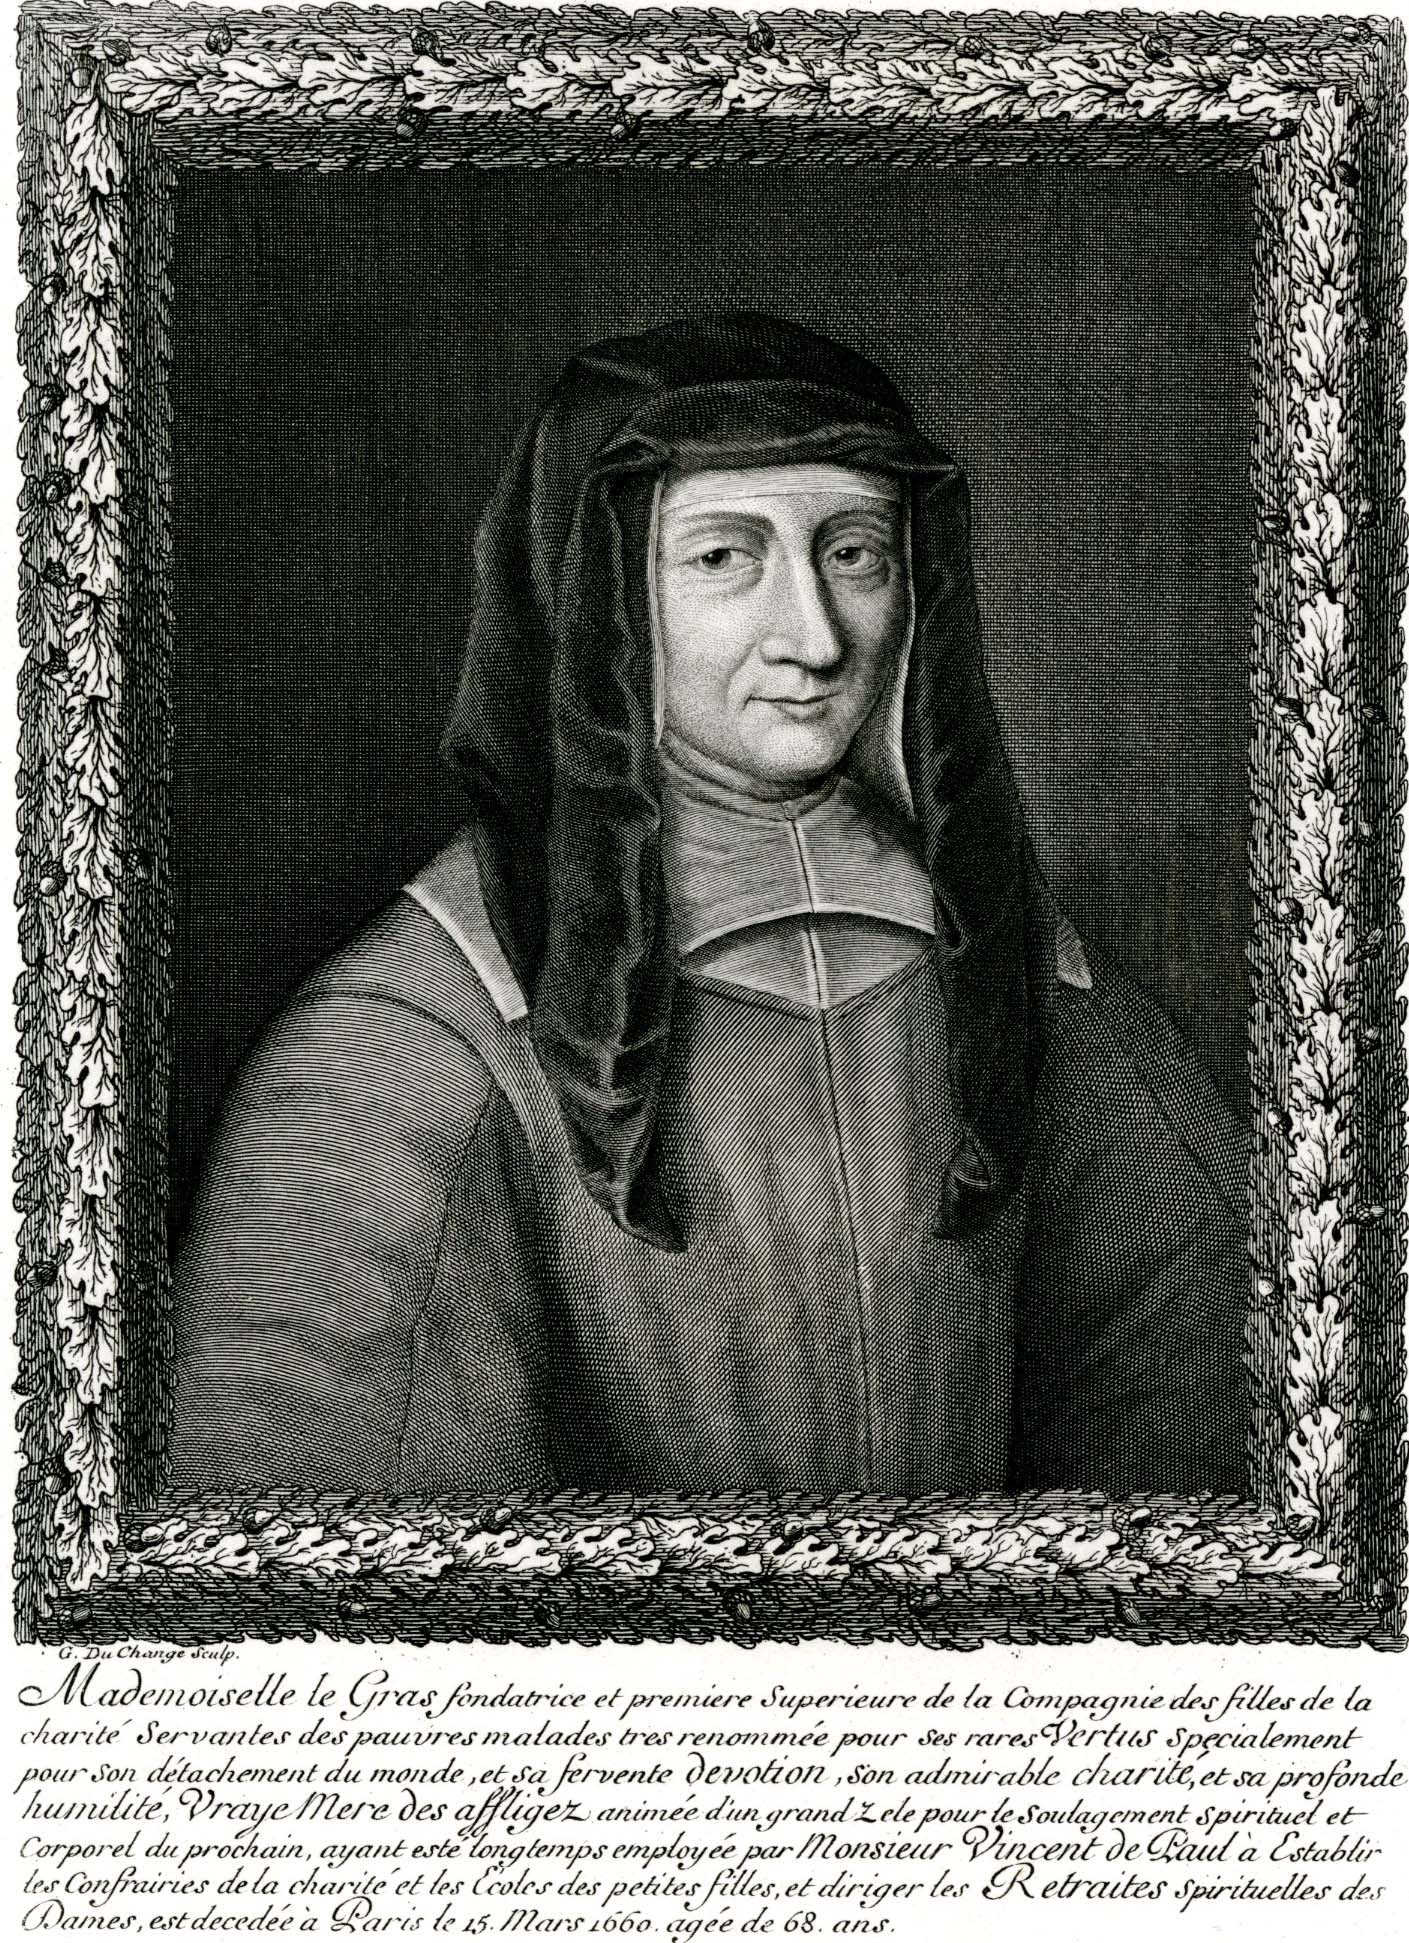 de Marillac Biography Now Published in English and Available Open Access